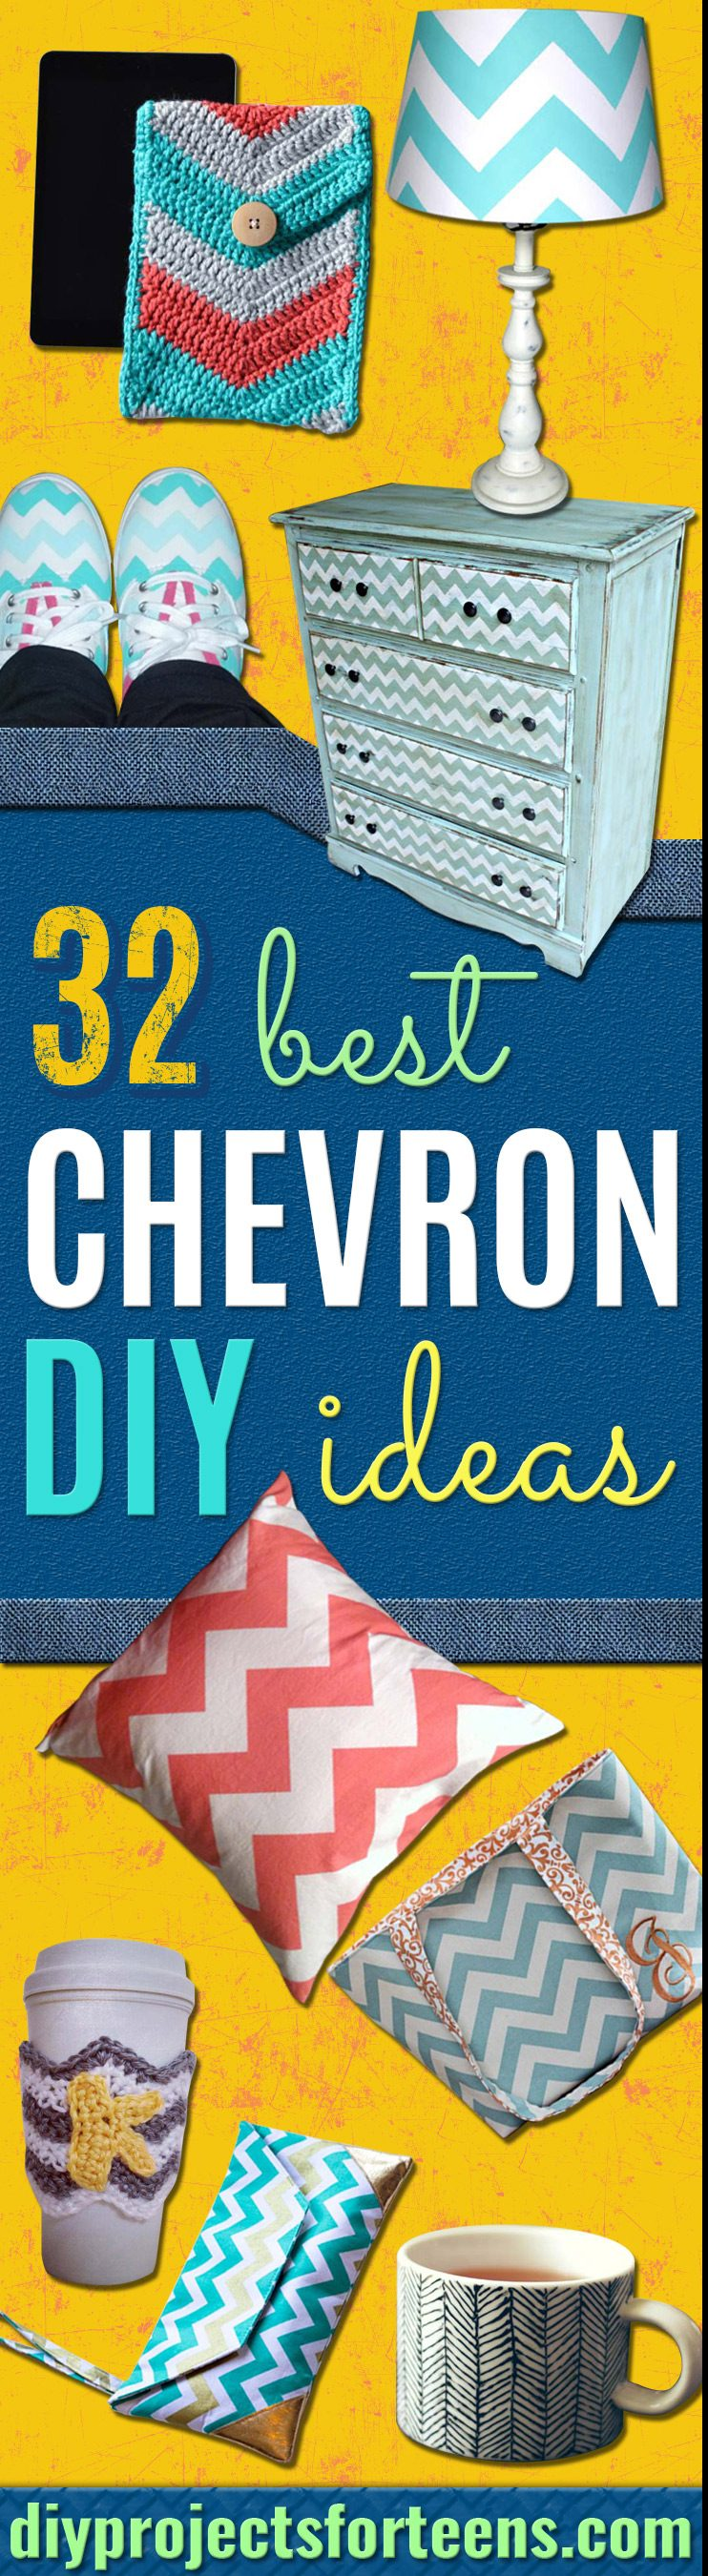 Best DIY Chevron Projects - DIY Wall Art, Home and Room Decor, Canvas Crafts With Chevrons, Furniture and Chairs, Decorations With Paint Ideas Using Chevron Patterns for Bedroom, Bathroom and Teens Rooms. Learn How To Tape Chevron Art With Easy To Follow Step by Step Tutorials